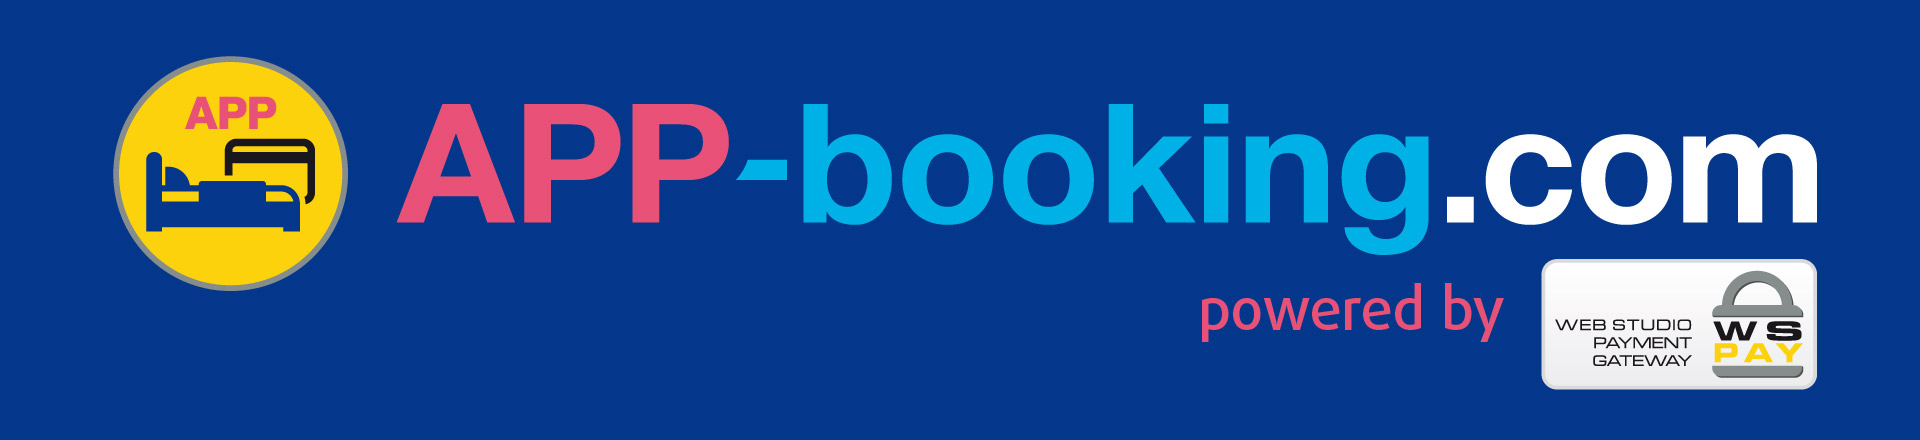 APP-booking.com powered by WSpay™